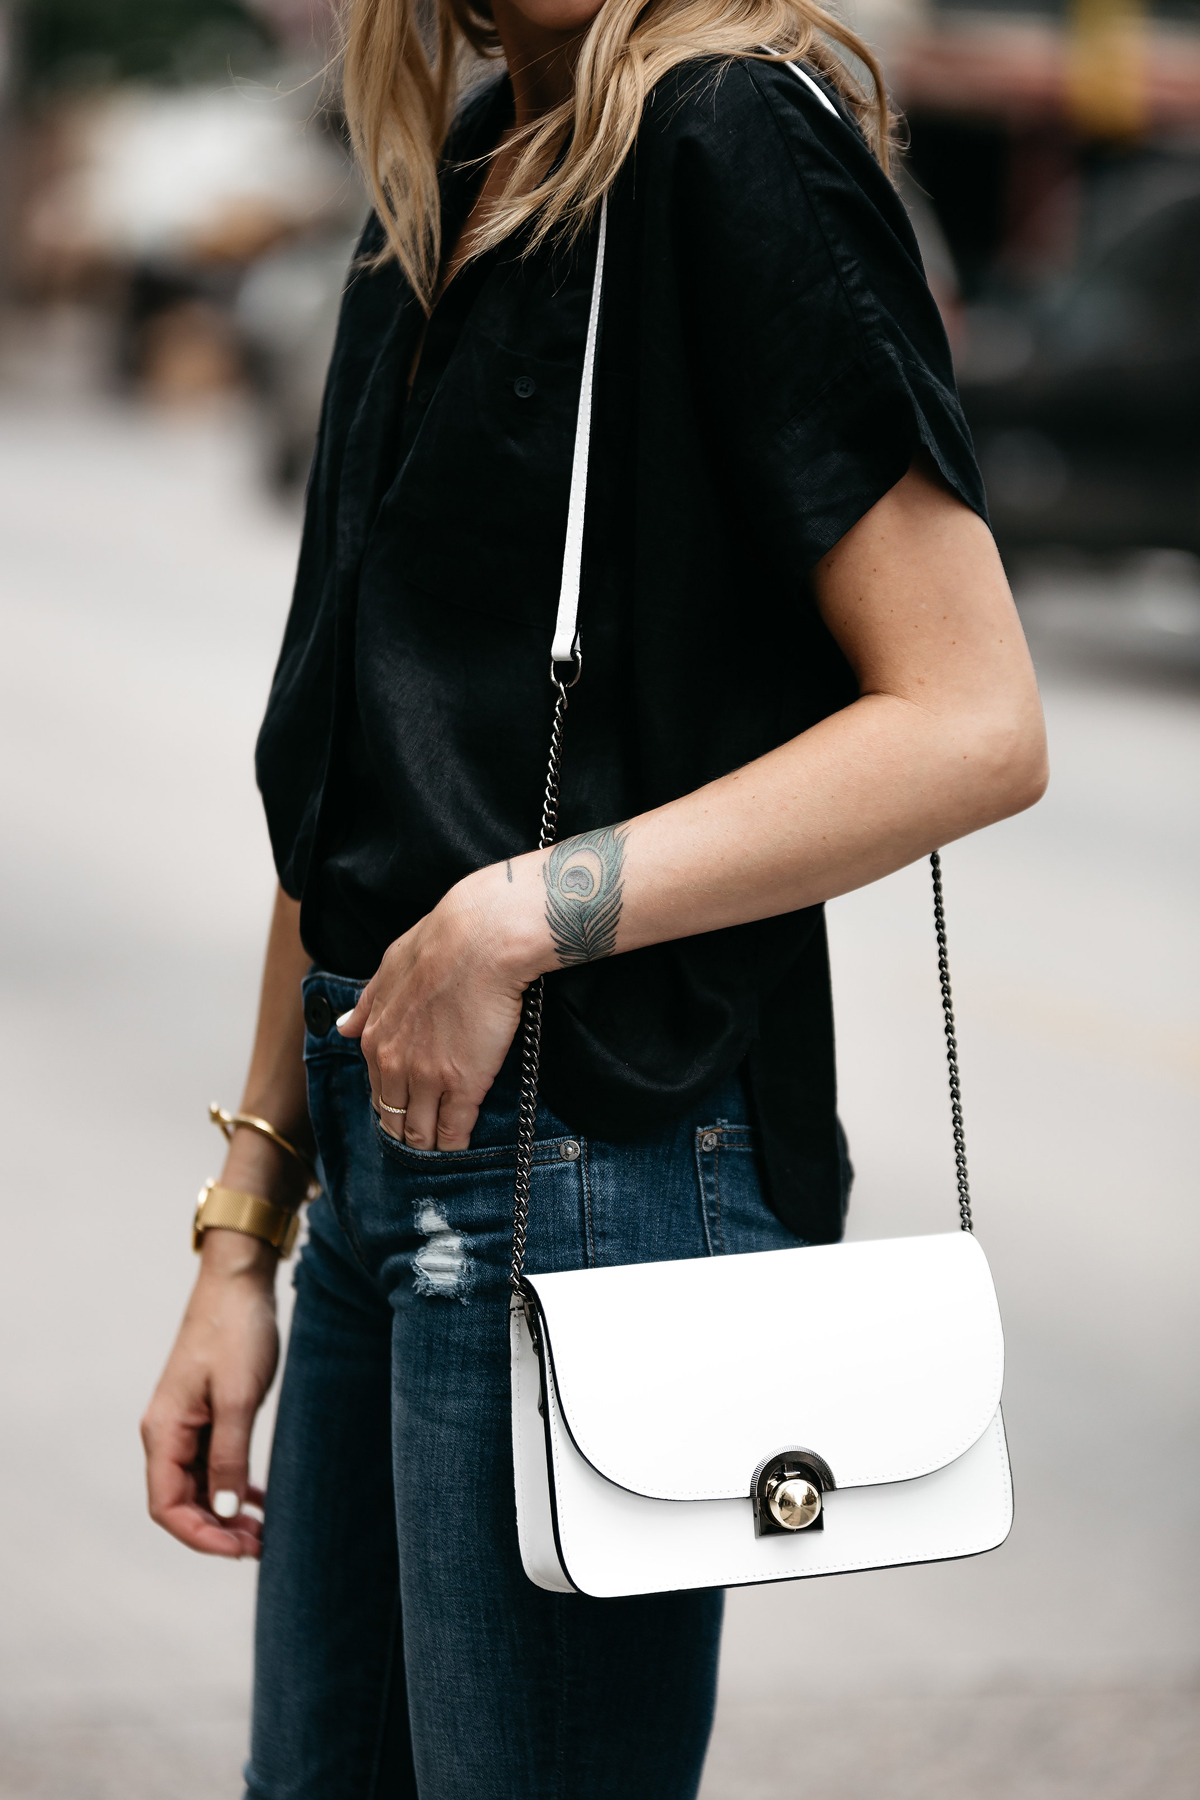 Fashion Jackson, Dallas Blogger, Fashion Blogger, Street Style, Everlane Black Button-Down Short Sleeve Shirt, DL1961 Denim Skinny Jeans, Christian Louboutin White Pumps, White Crossbody Handbag, Celine Sunglasses